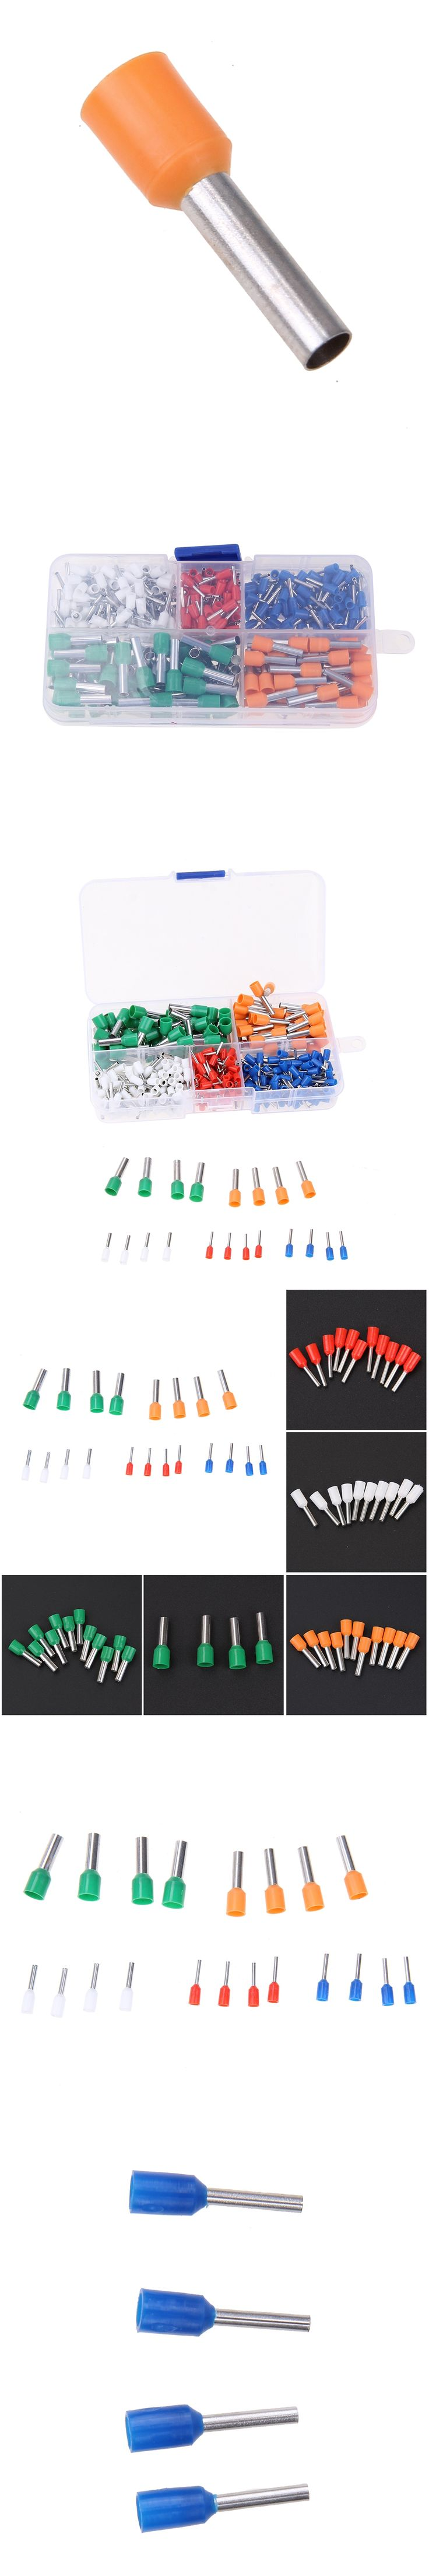 400pcs Wire Copper Crimp Connector Kit Insulated Cord End Pin Electrical Crimp Terminal Bootlace Cooper Ferrules Set 22-10AWG